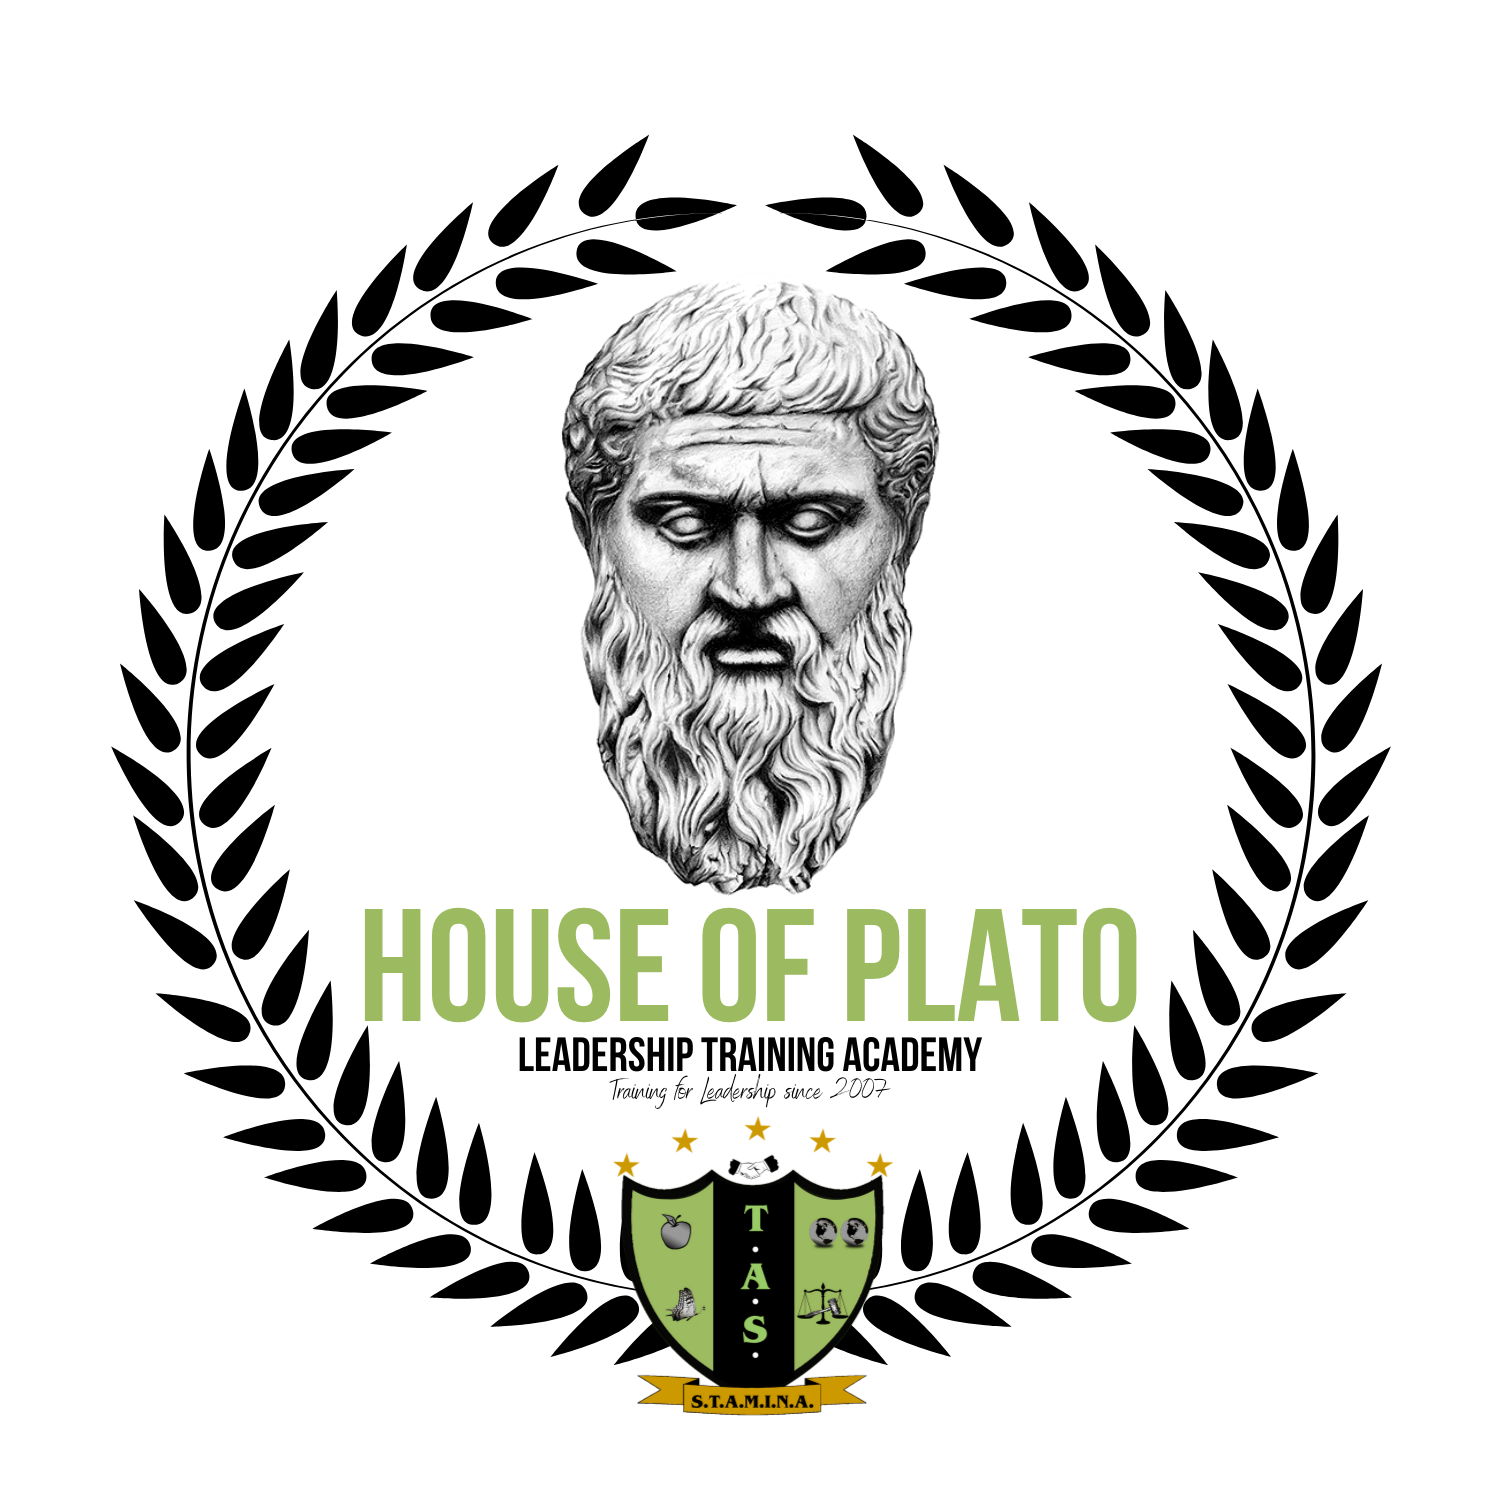 House of Plato